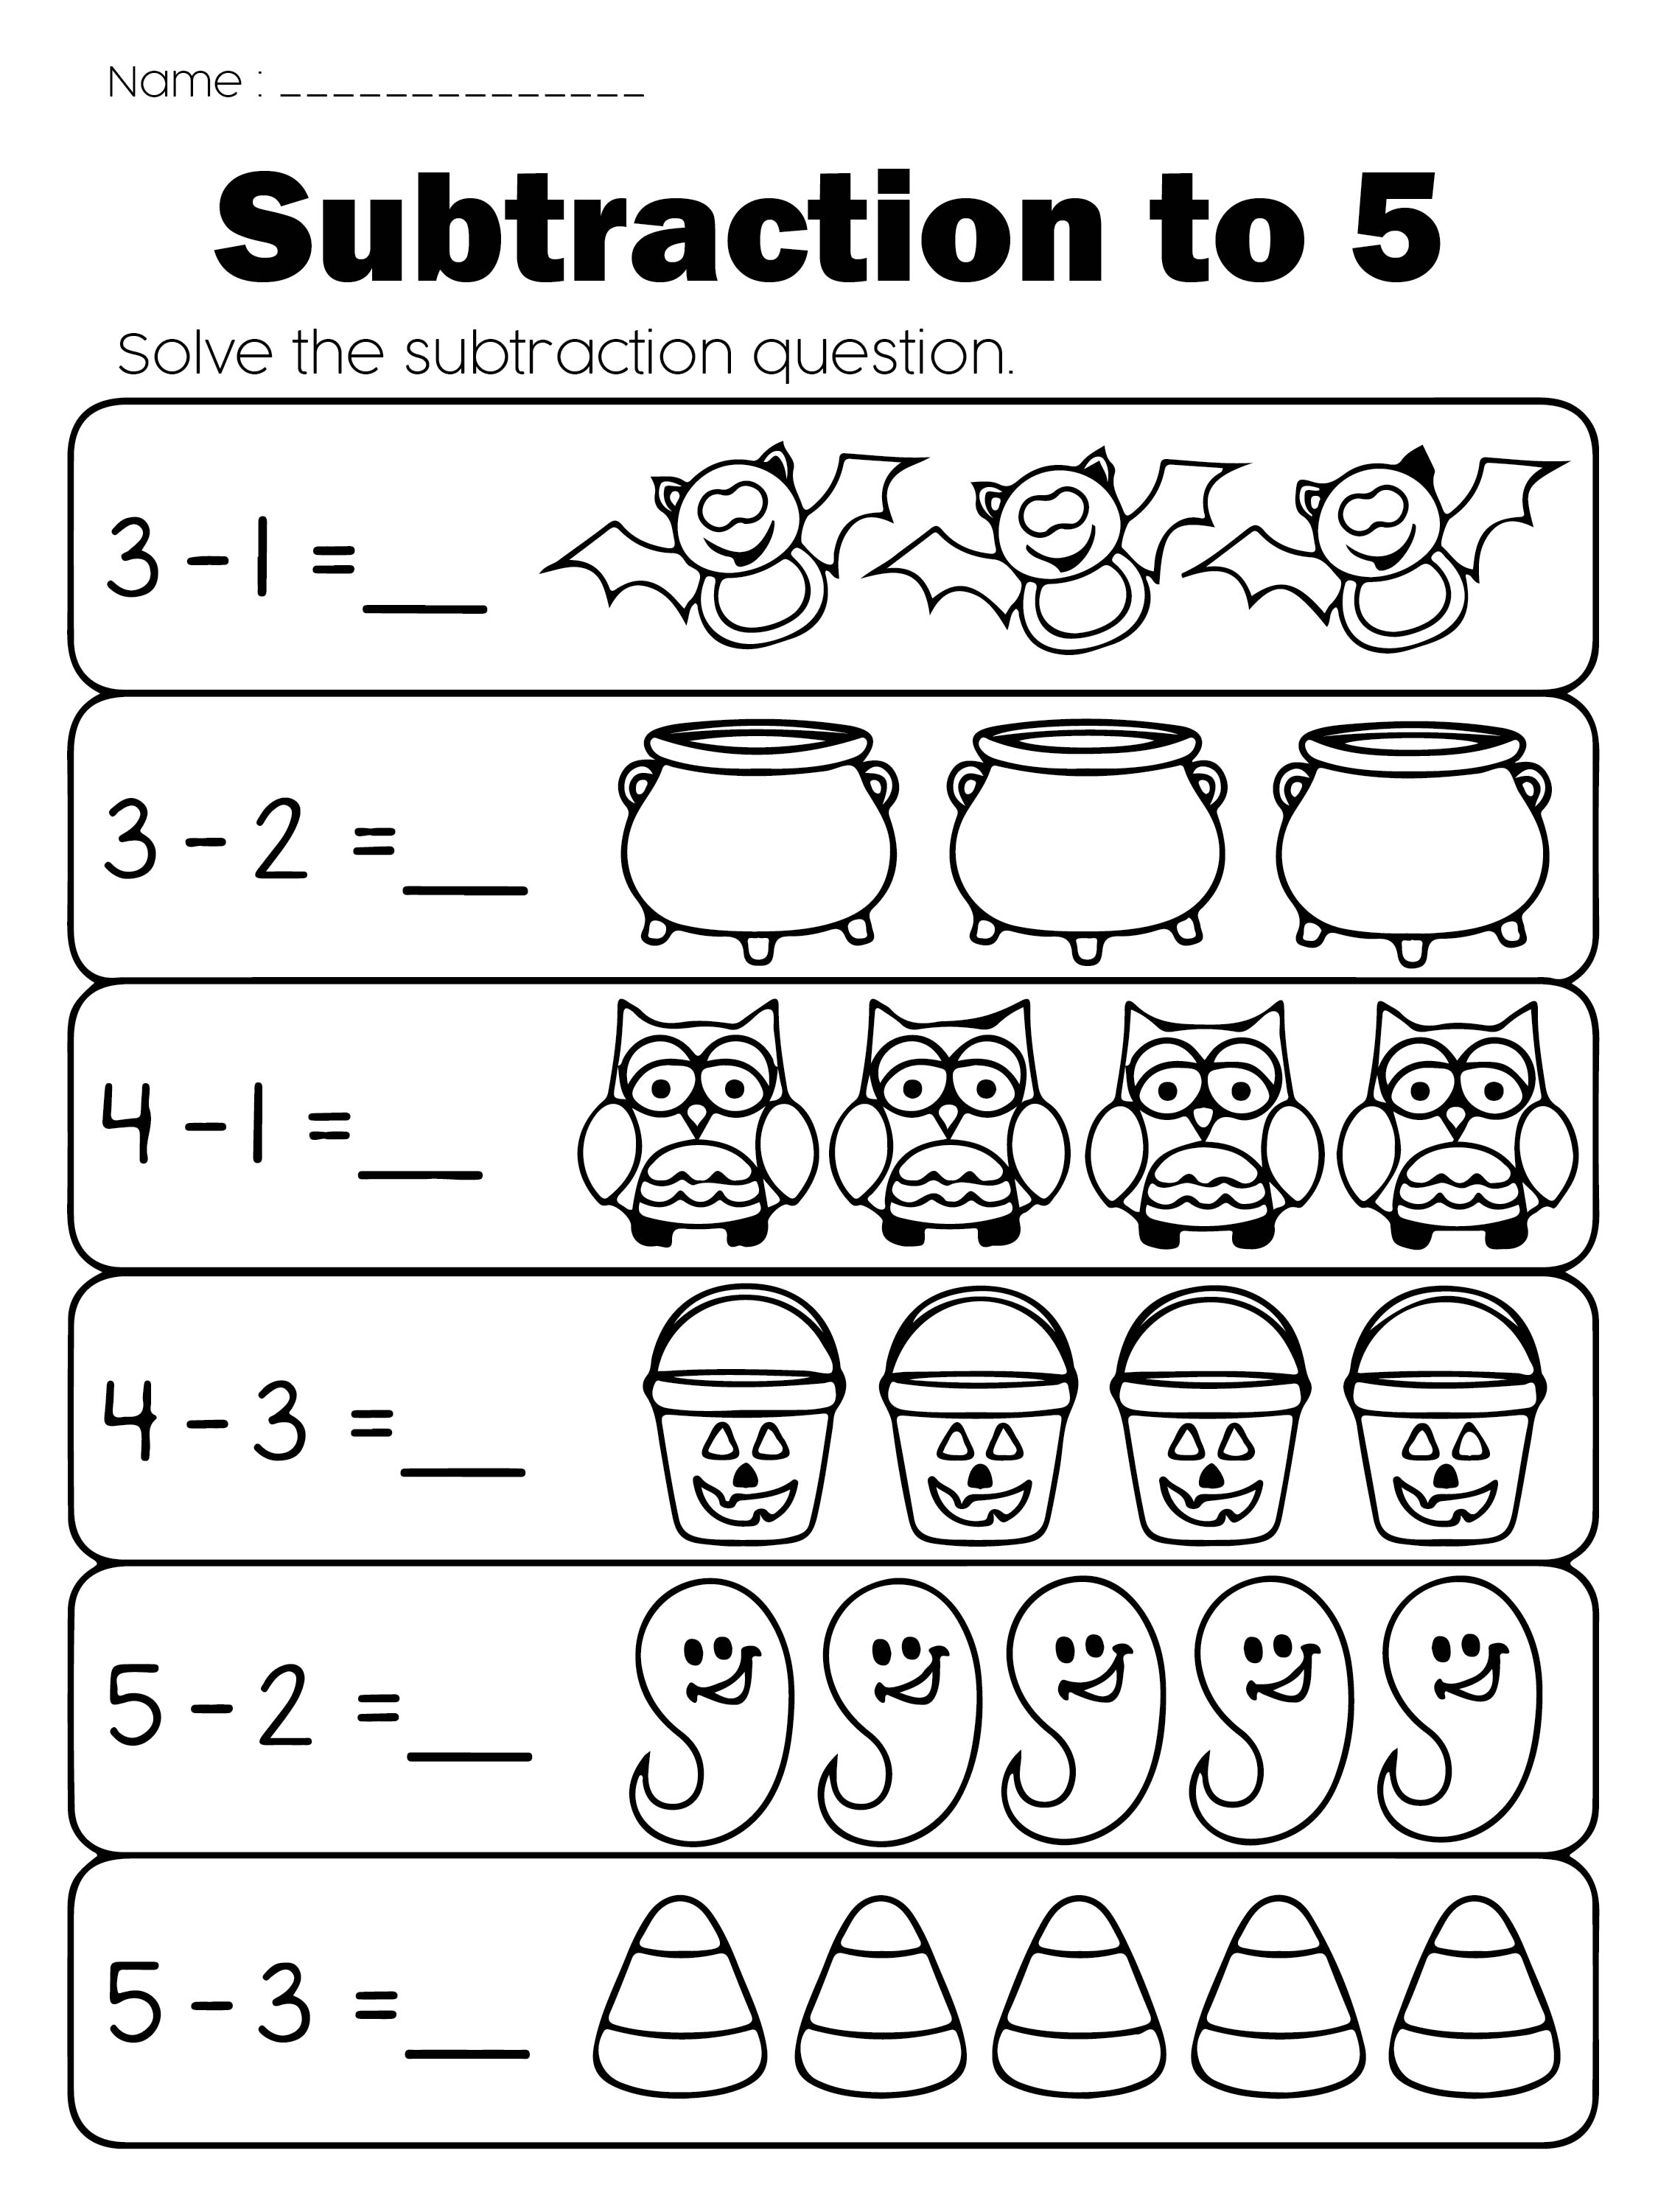 All Worksheets Halloween Worksheets For Preschoolers Printable – Halloween Worksheets for Preschool